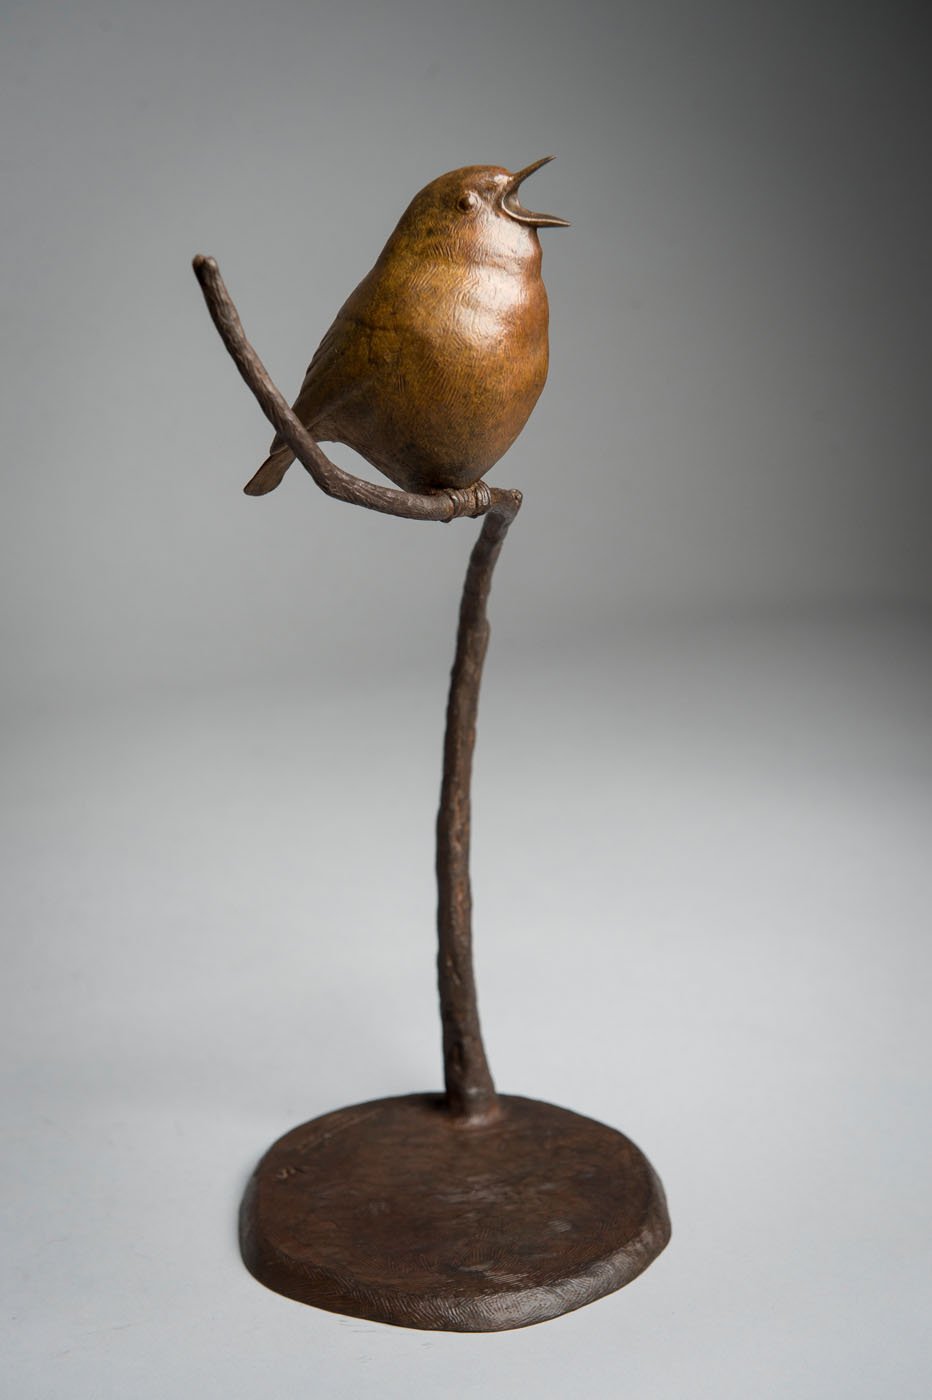 Bronze sculpture of a singing Robin bird by artist Anthony Smith